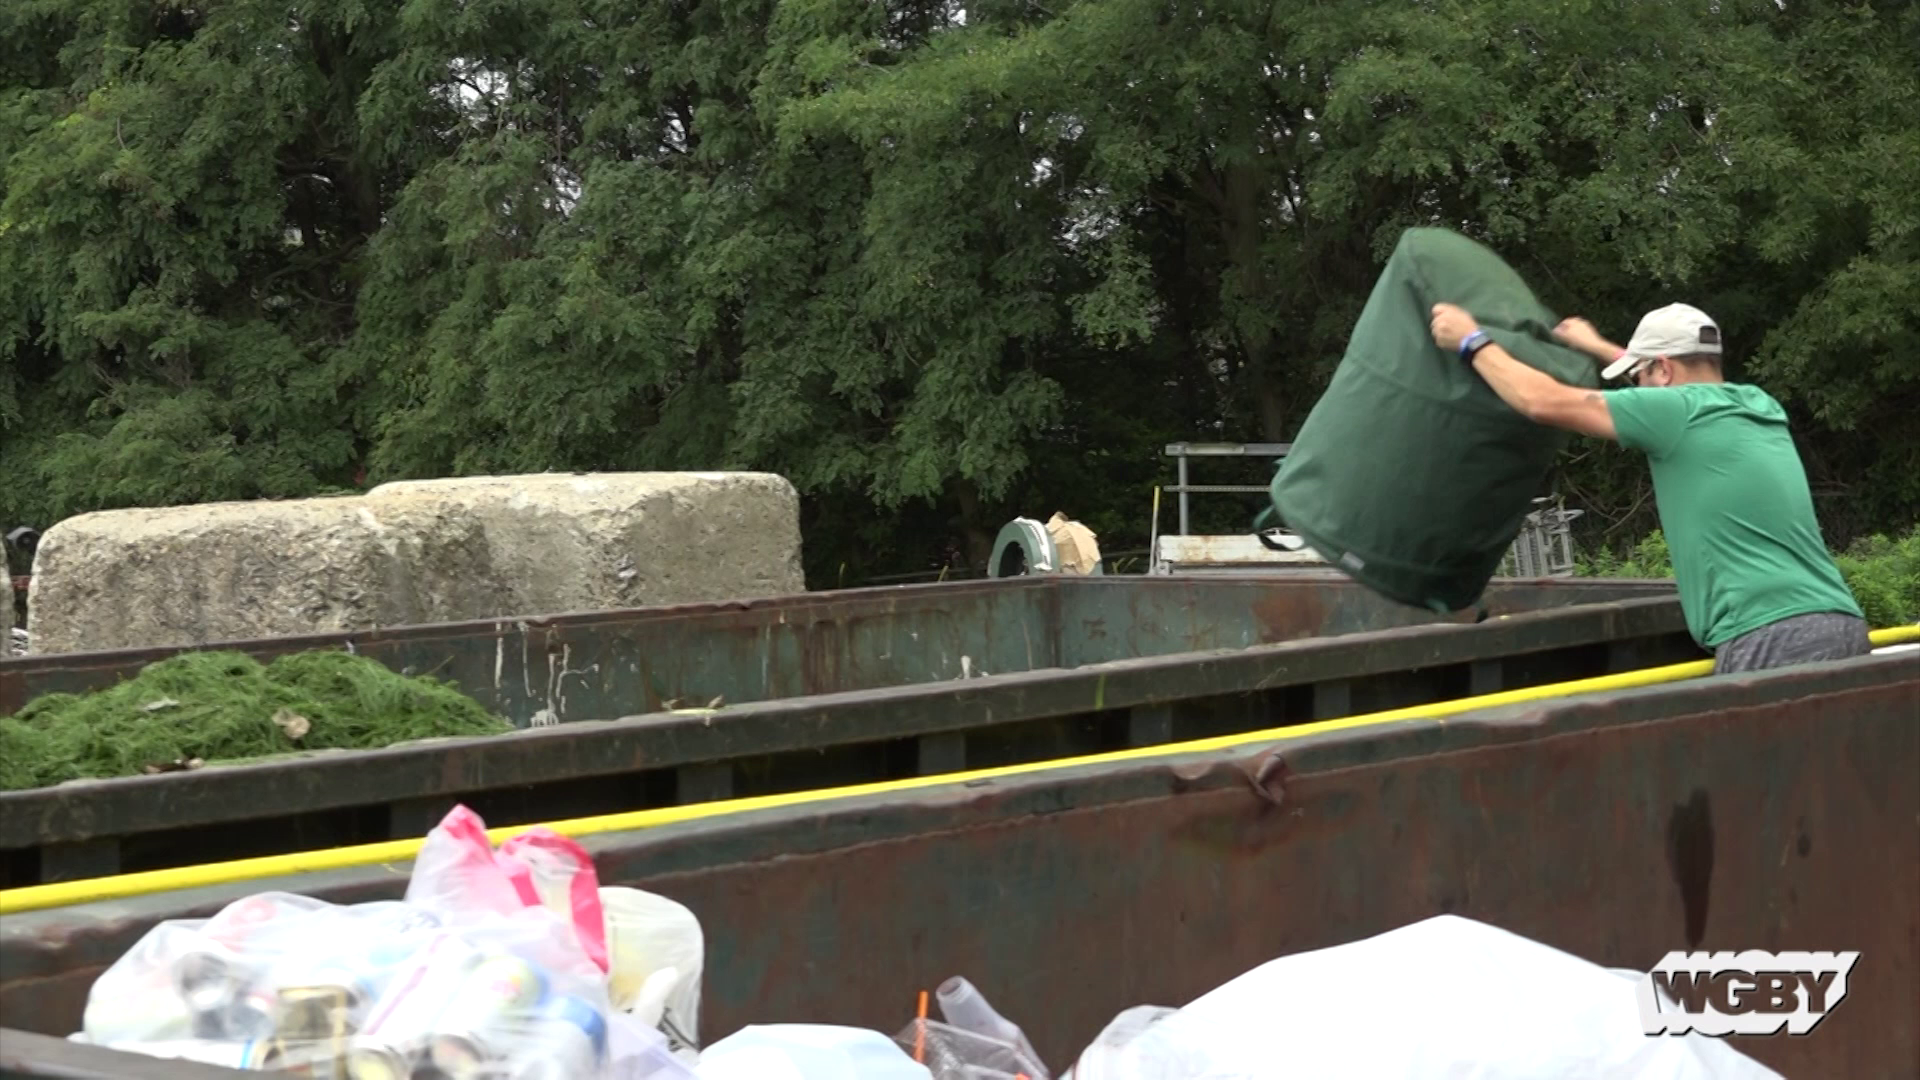 Trash Collection in Pittsfield